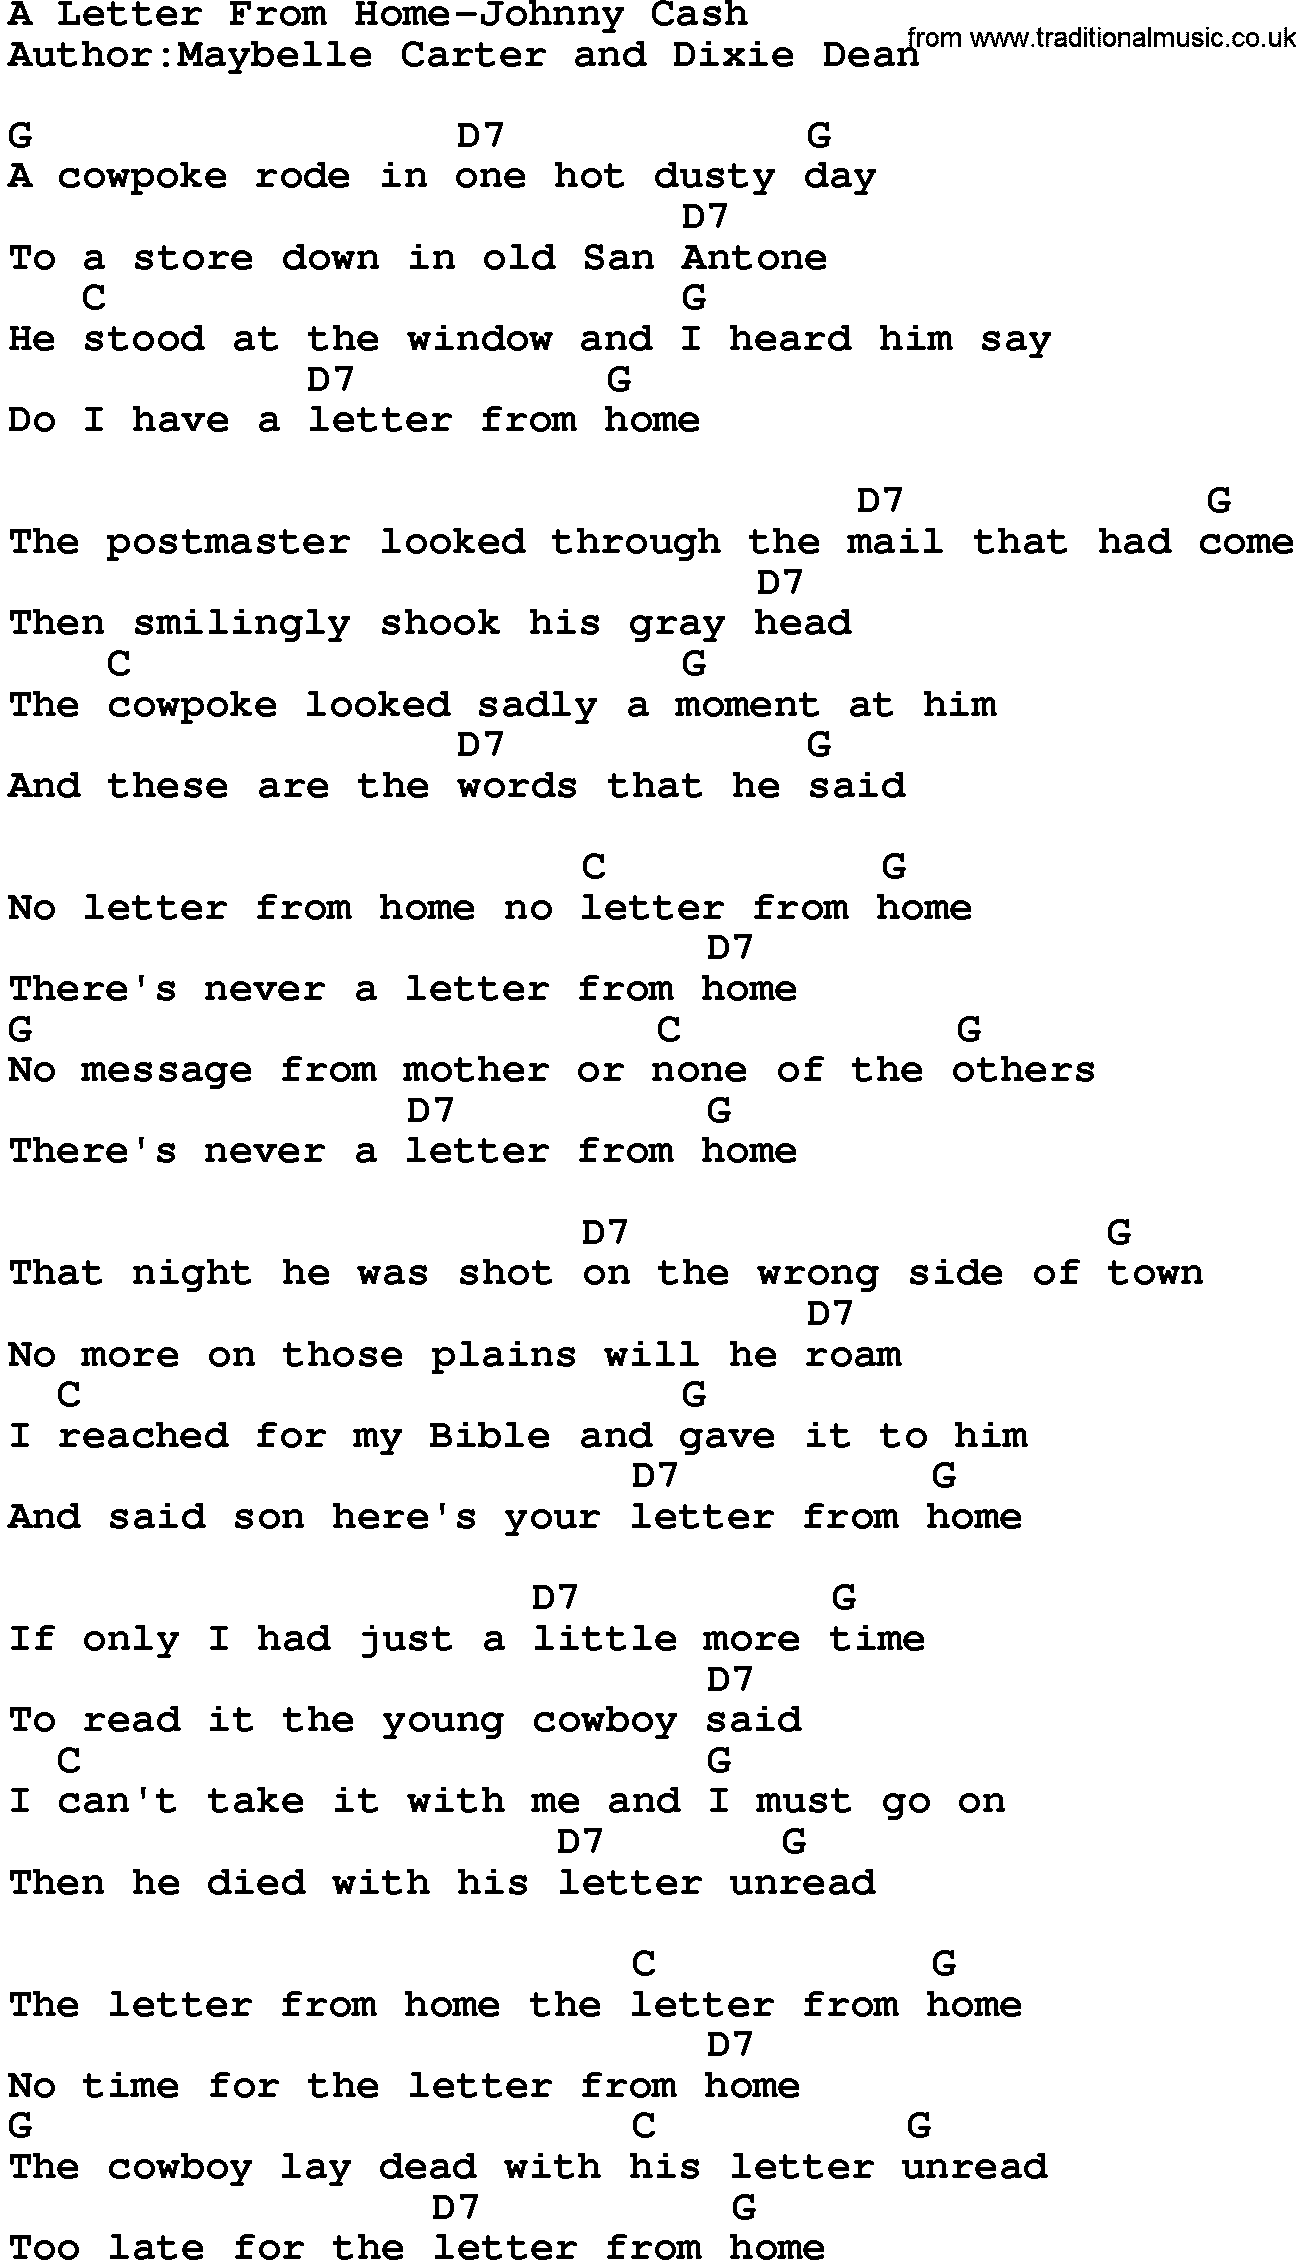 Download A Letter From Home-Johnny Cash lyrics and chords as PDF file ...